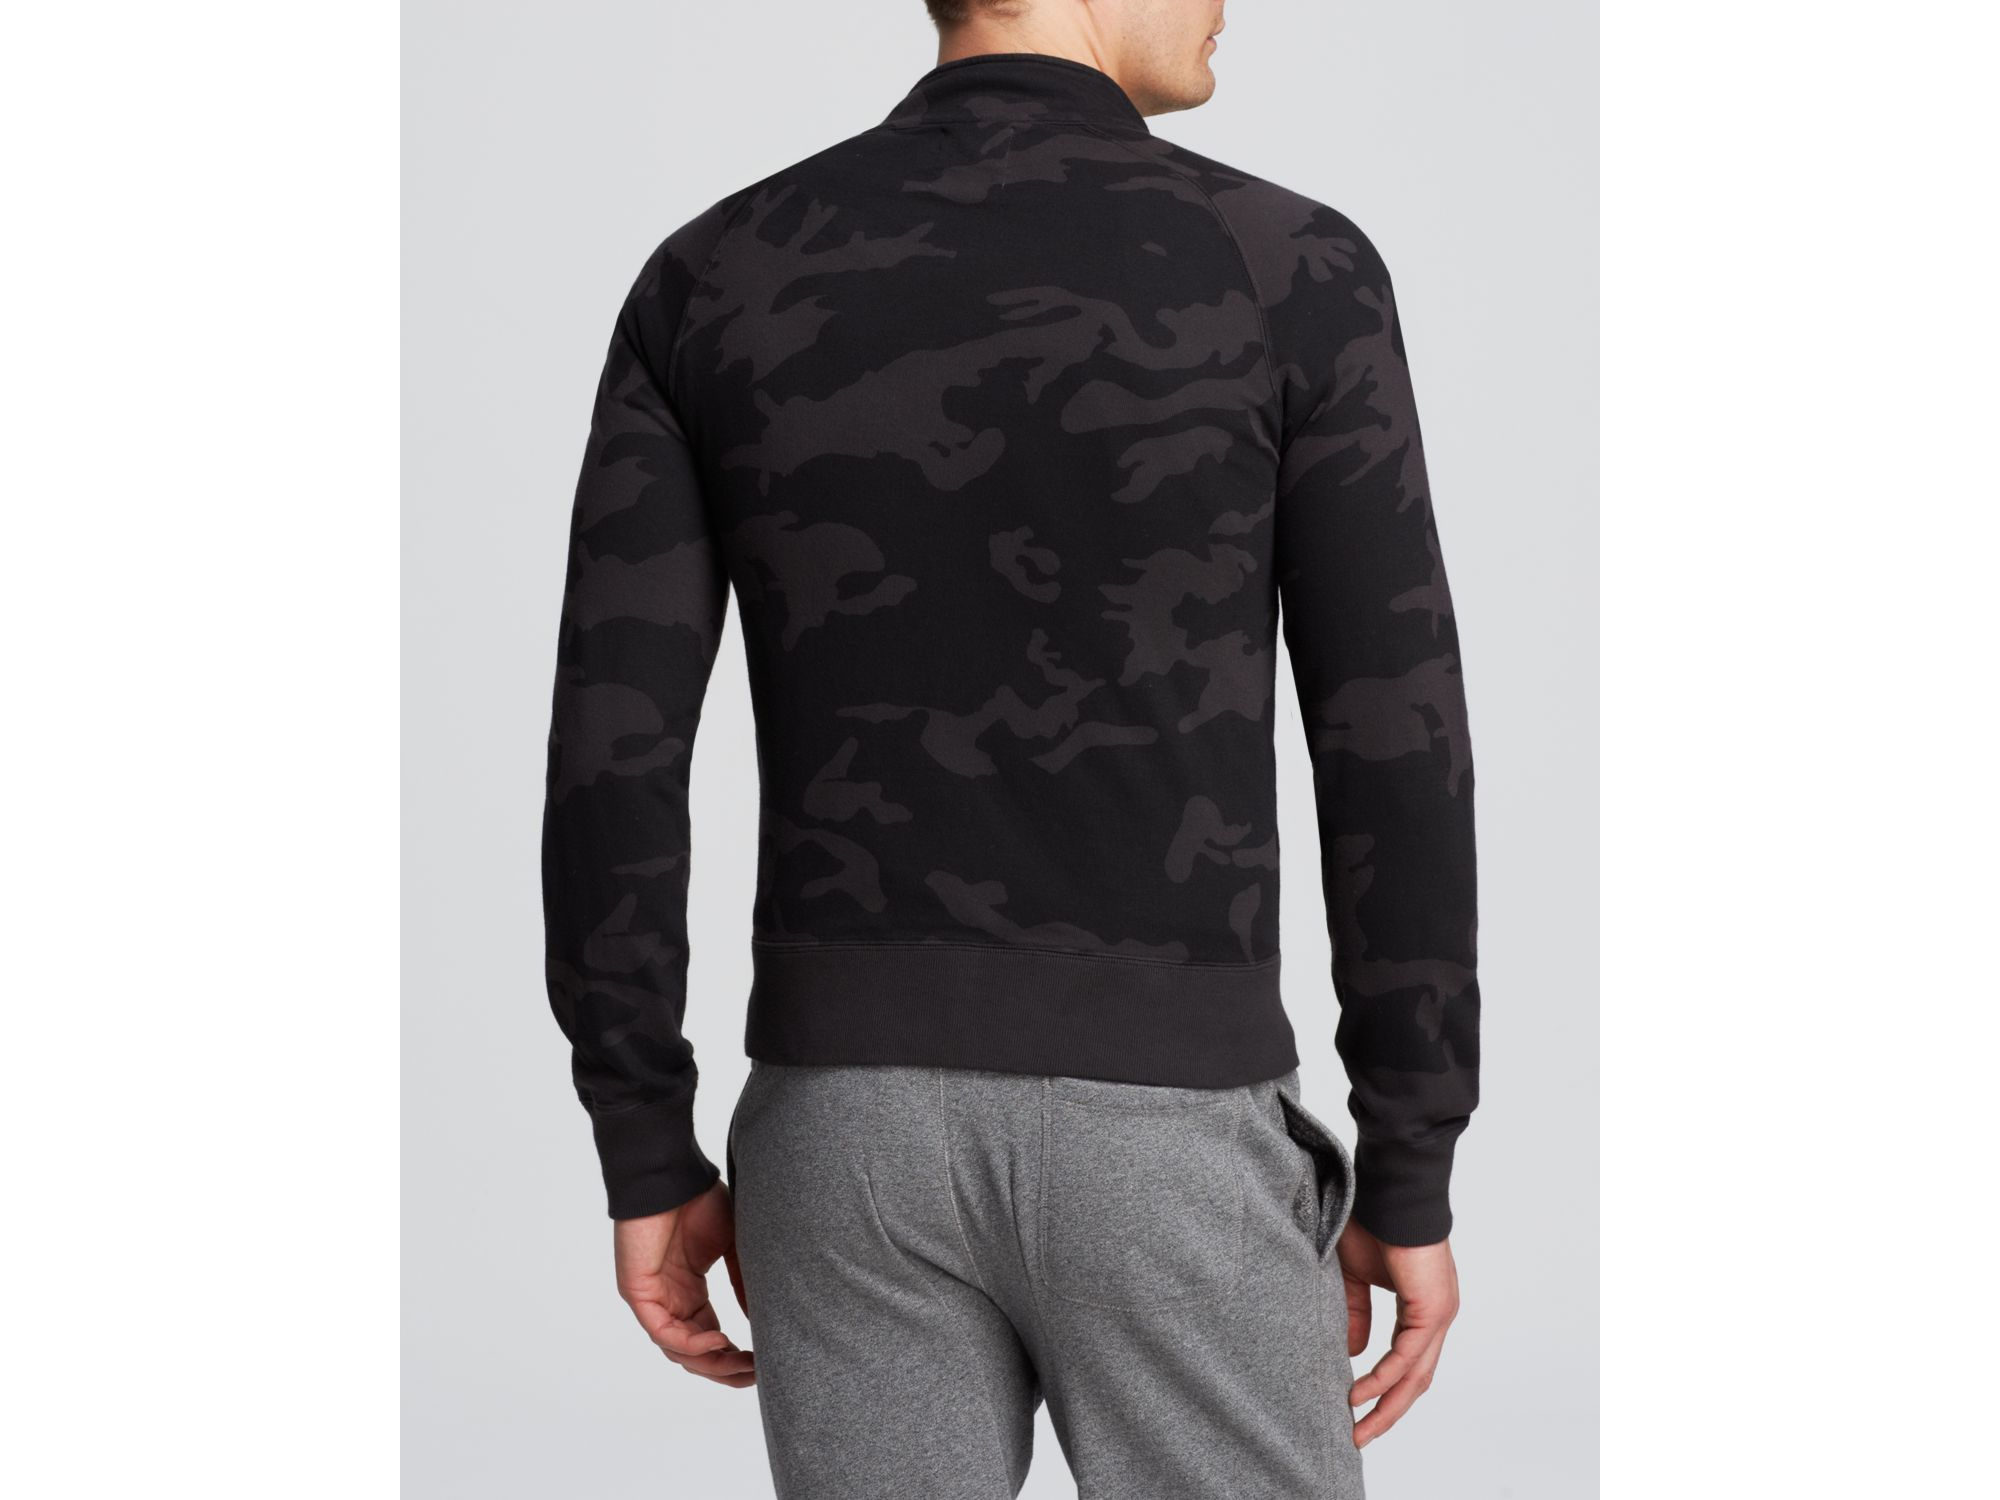 Todd Synder X Champion Cotton Todd Snyder + Champion Camo Zip Sweatshirt - Bloomingdale's Exclusive in Black Camo (Black) for Men